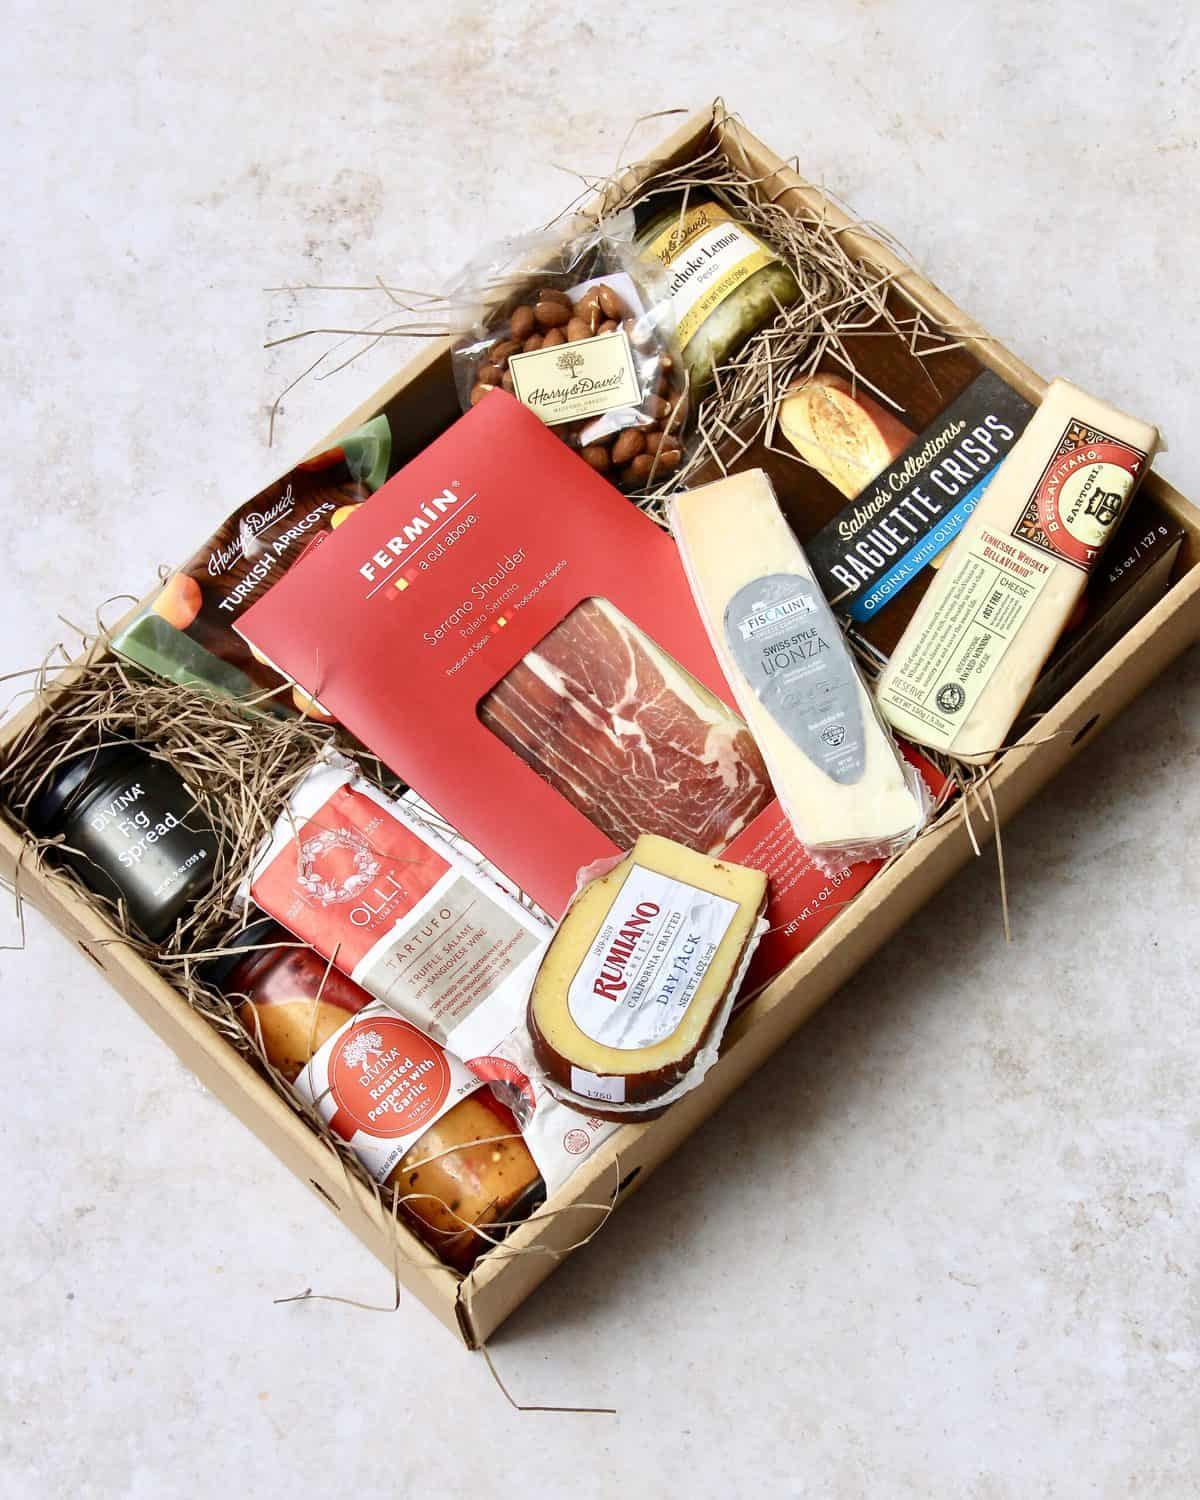 Harry & David's Epicurean Cheese and Charcuterie Collection